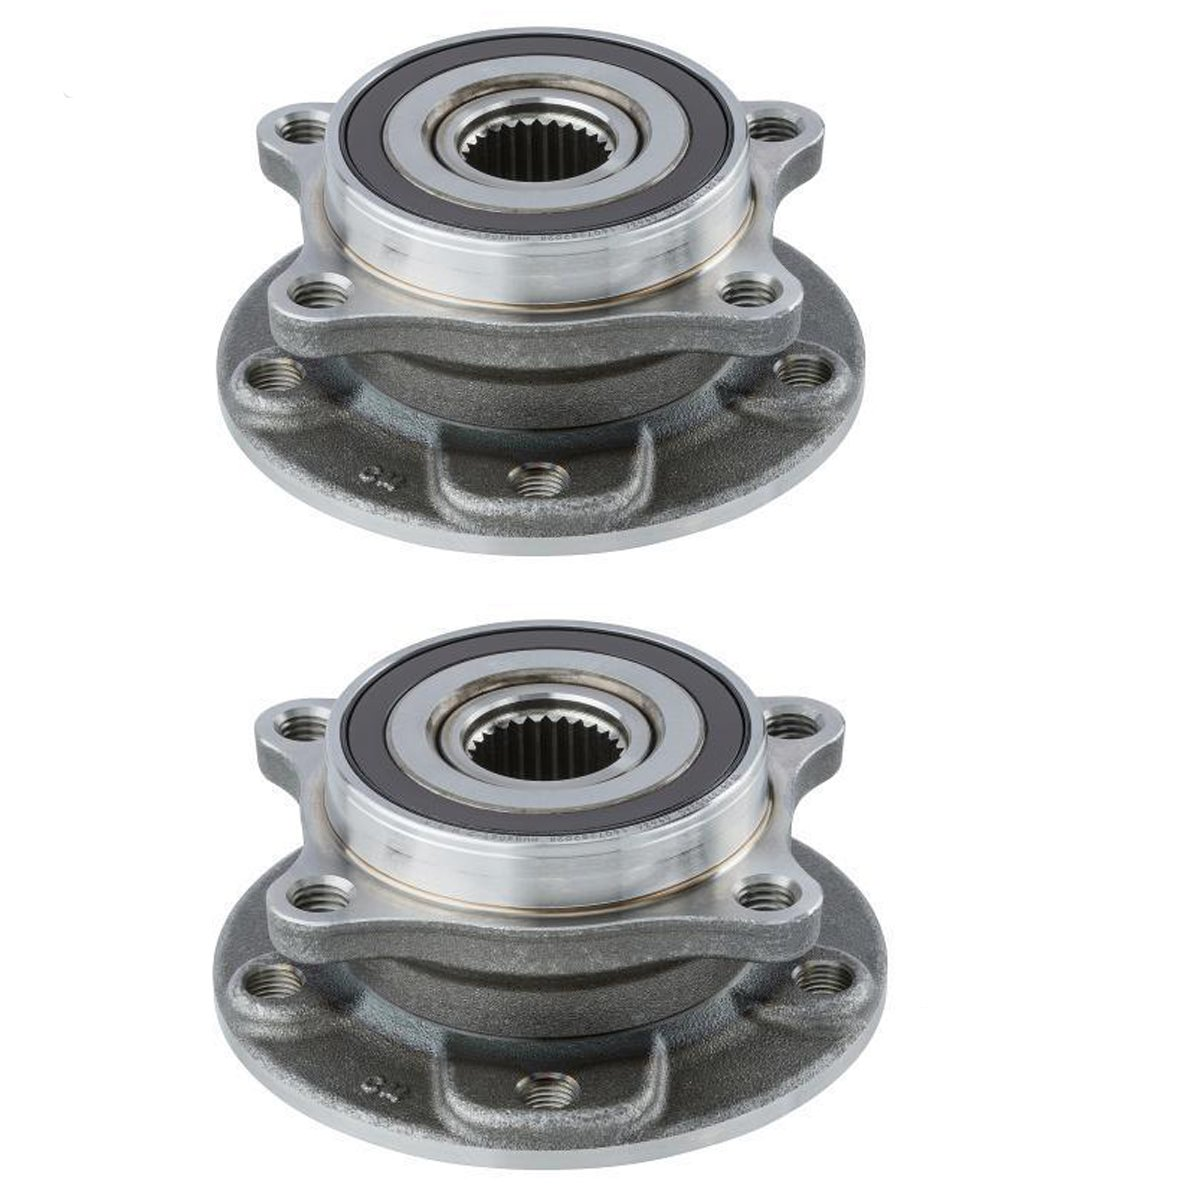 Detroit Axle - New Set (2) Front Driver & Passenger Wheel Hubs and Bearings for 2013 2014 2015 2016 Dodge Dart and 2015 2016 Chrysler 200